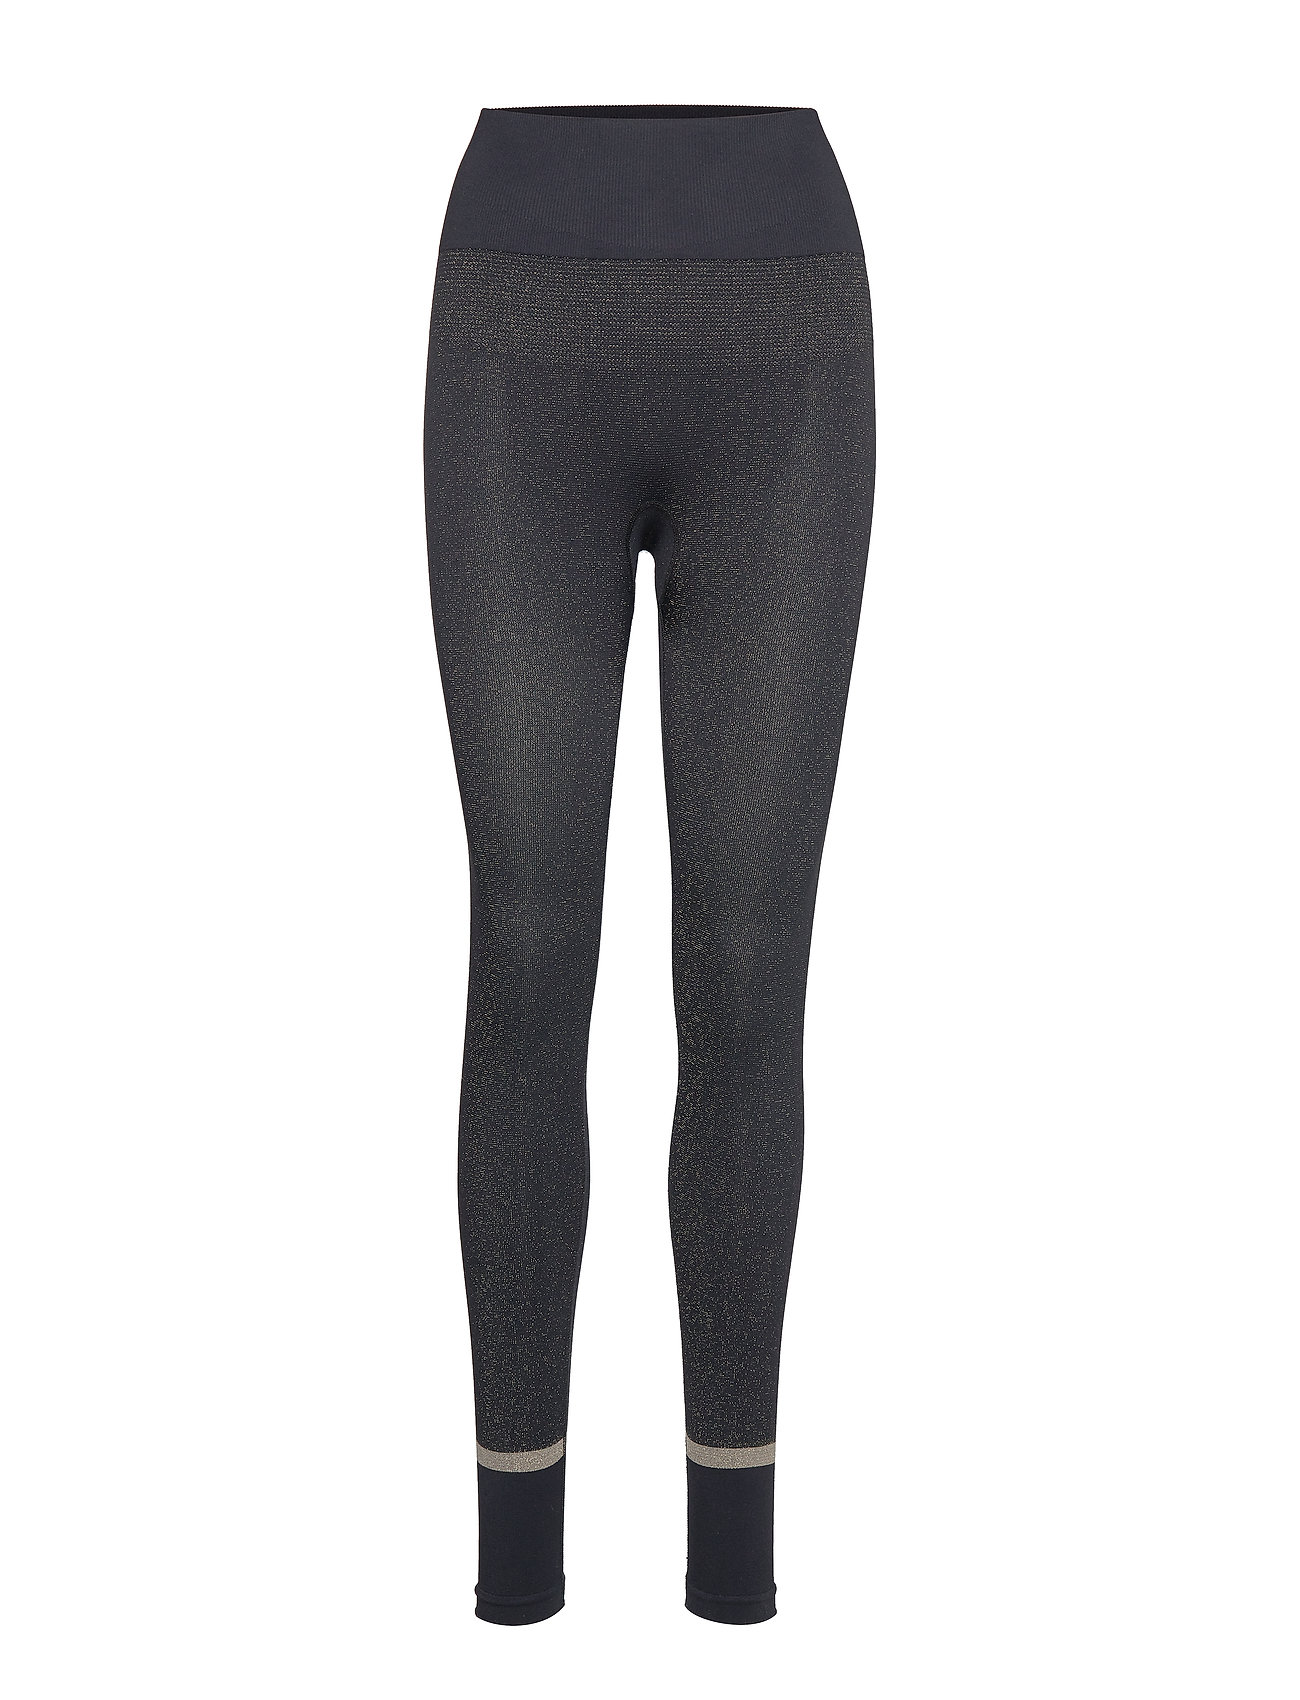 Casall Gold Seamless Tights - BLACK GOLD